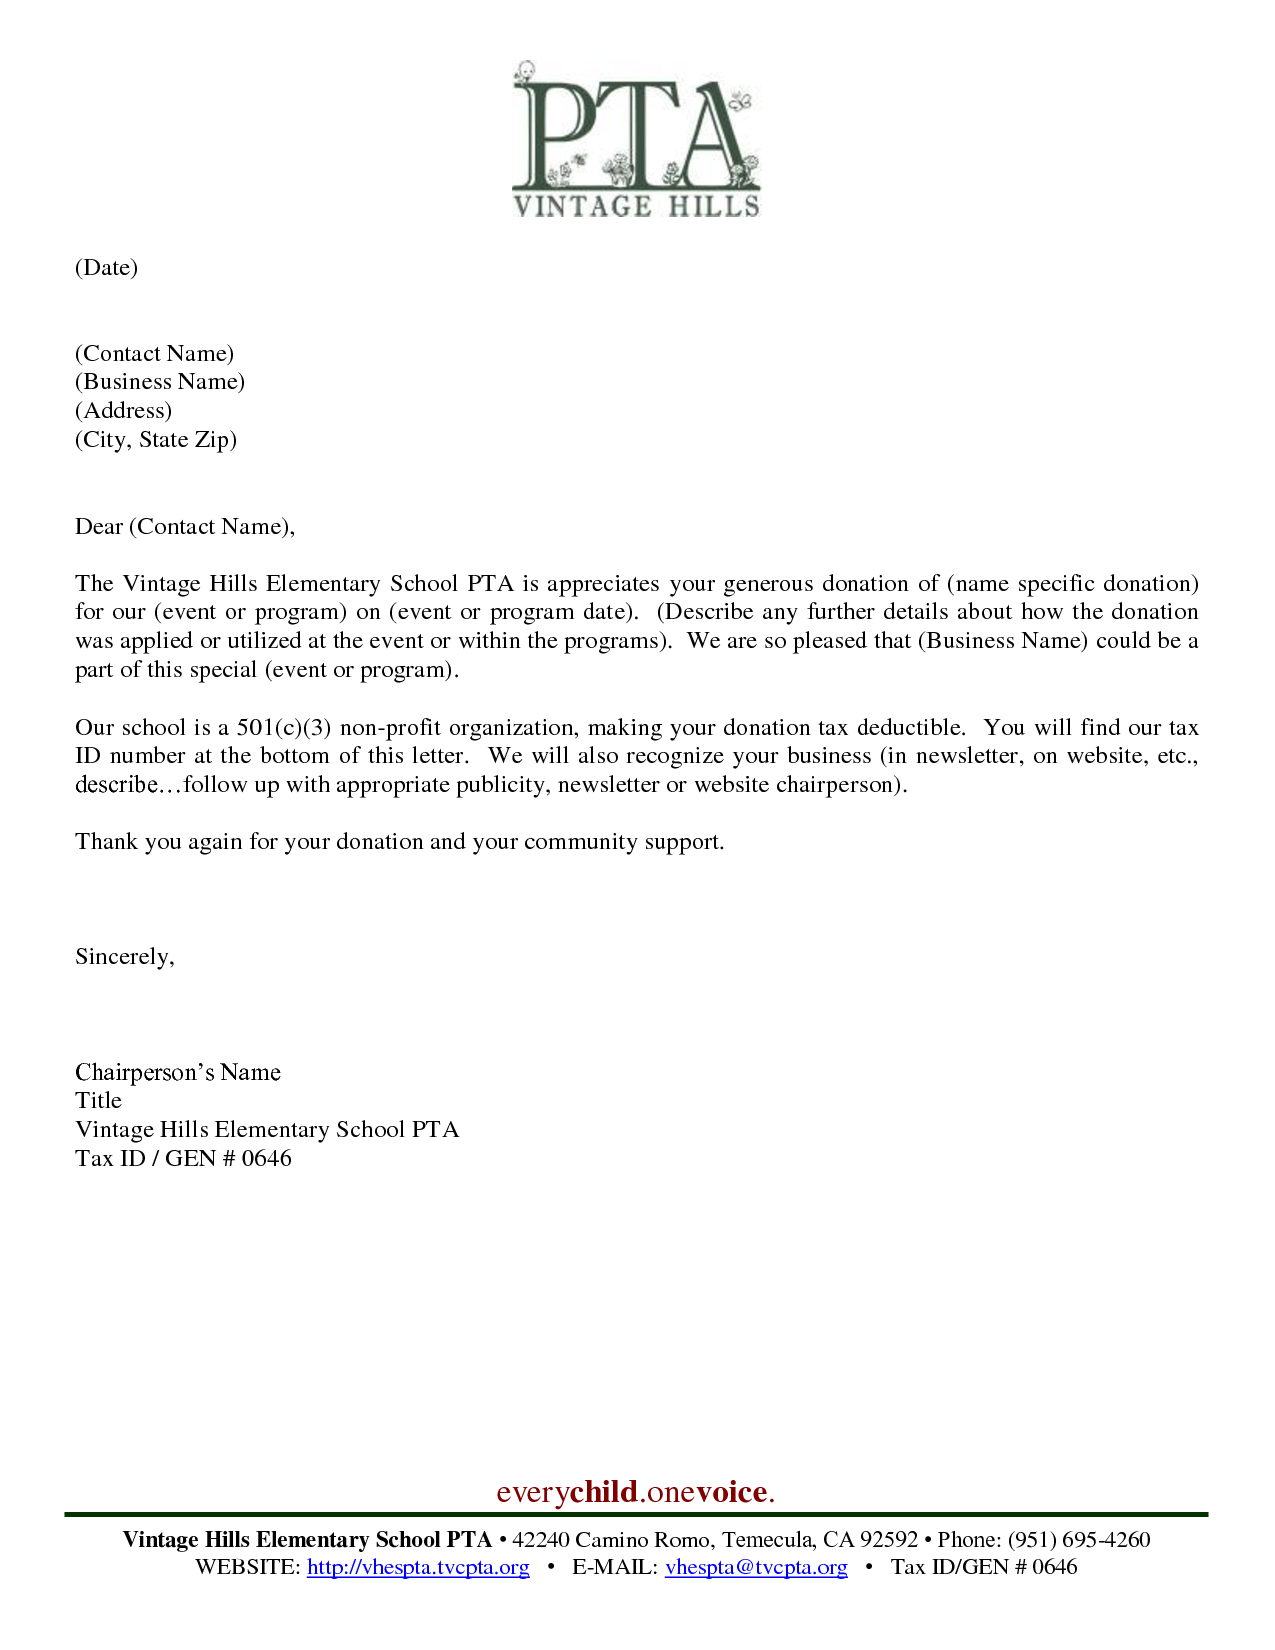 Donation Letter Template for Fundraiser - Sample Thank You Letter for Donation to School Pdf format